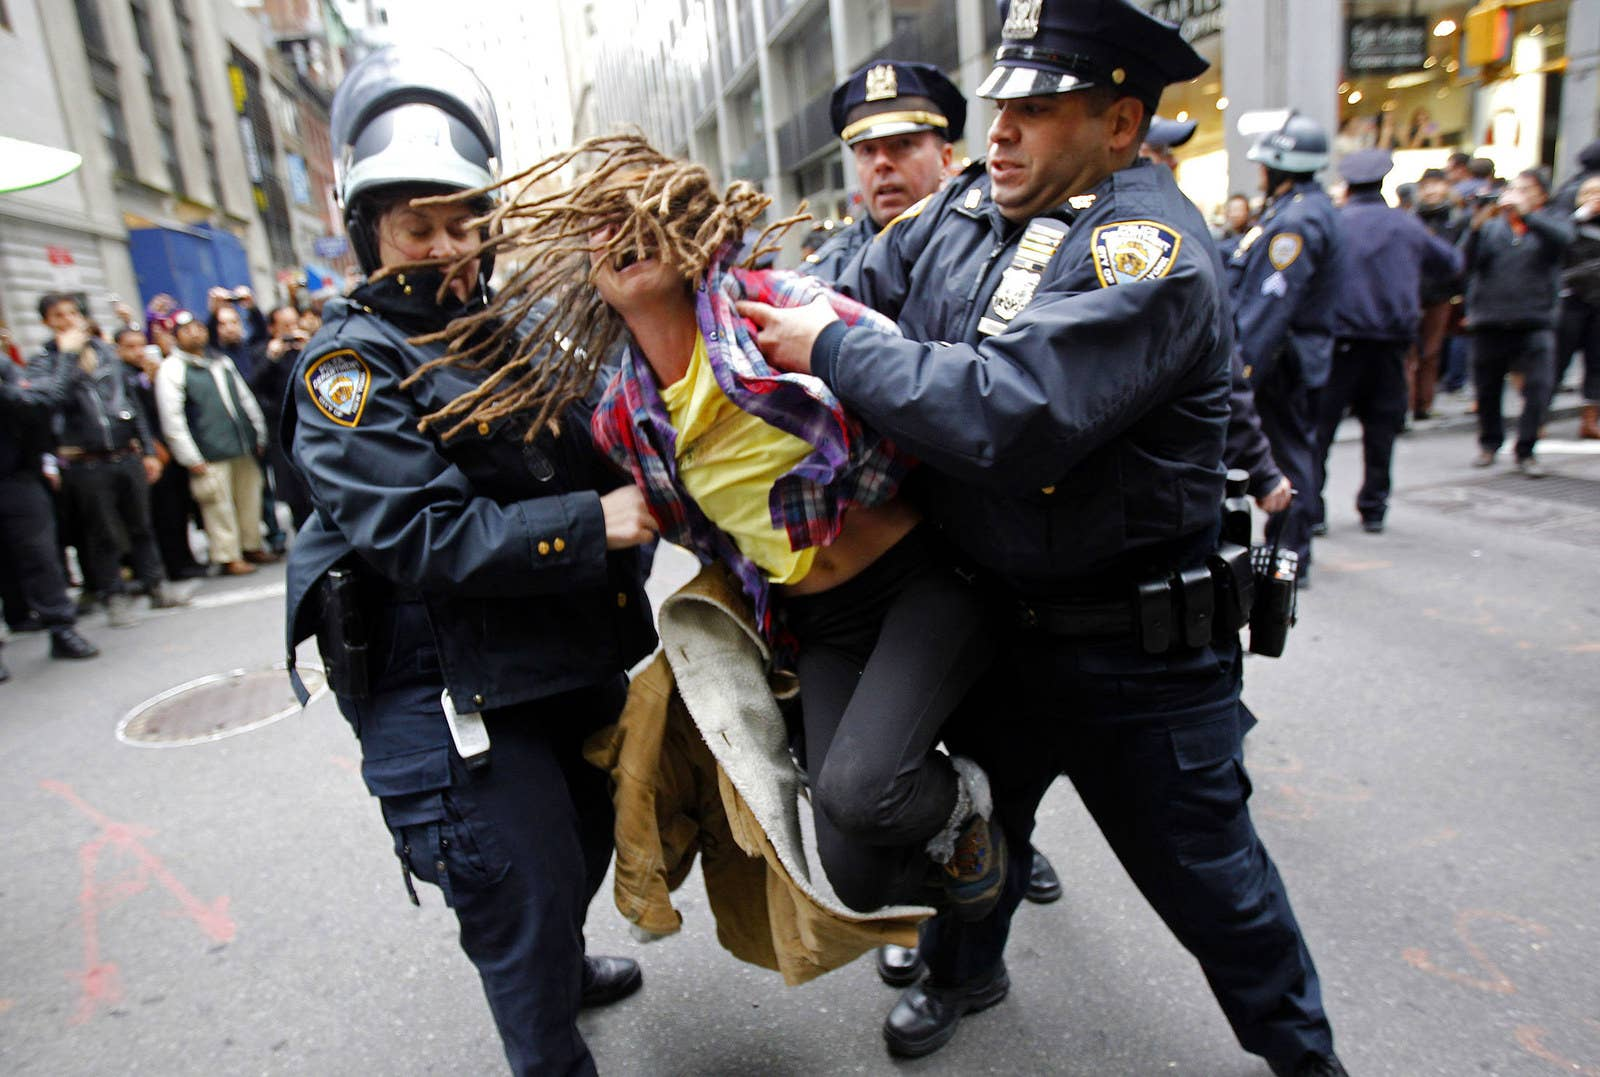 An Occupy Wall Street demonstrator is arrested by New York City police officers on Nov. 17, 2011.